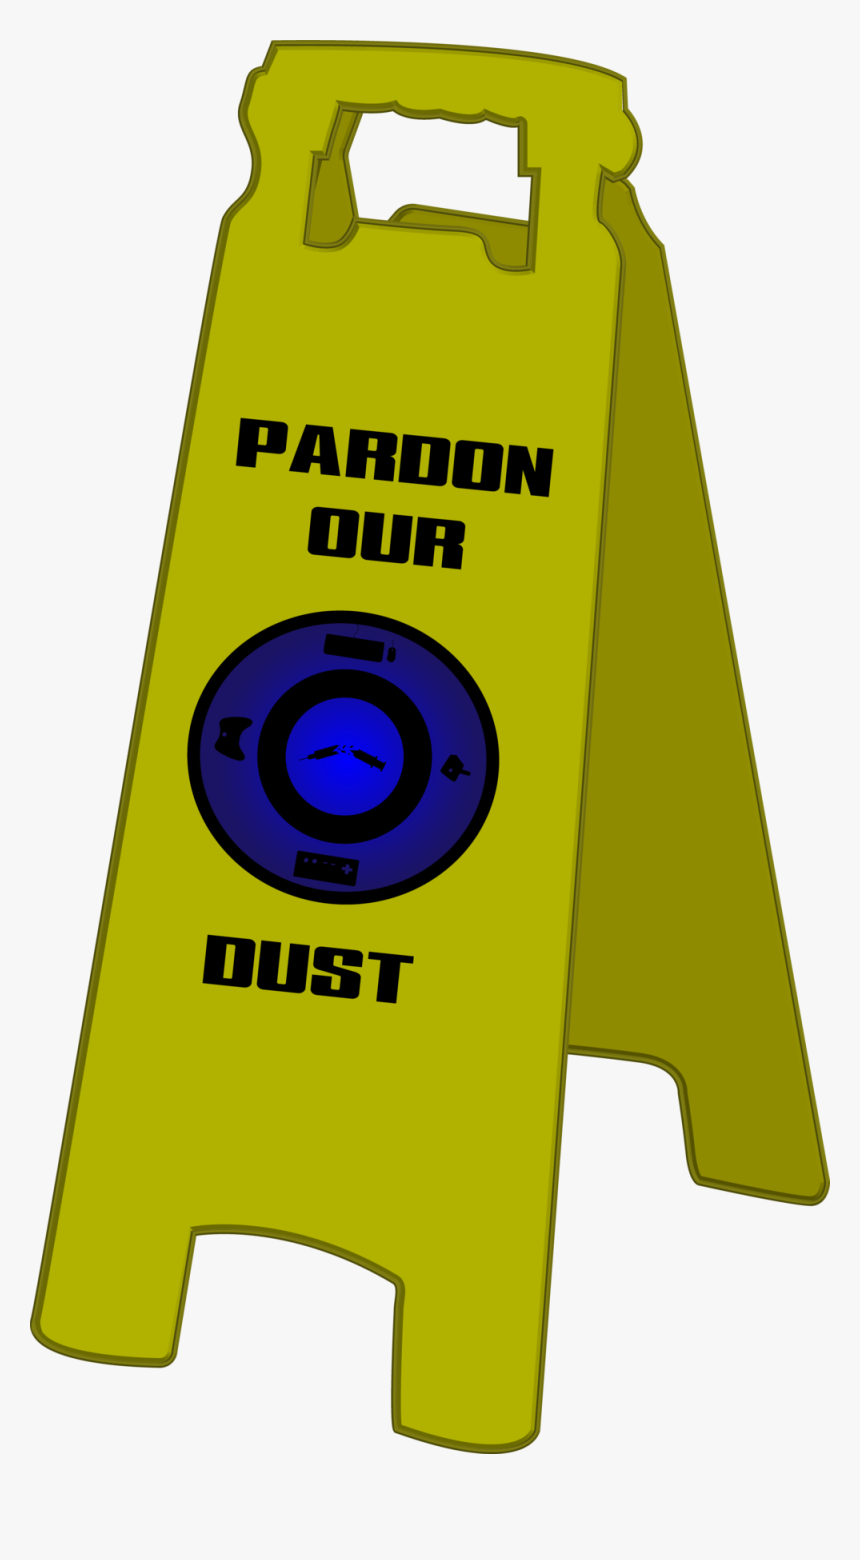 Ncfg Dust Sign, HD Png Download, Free Download